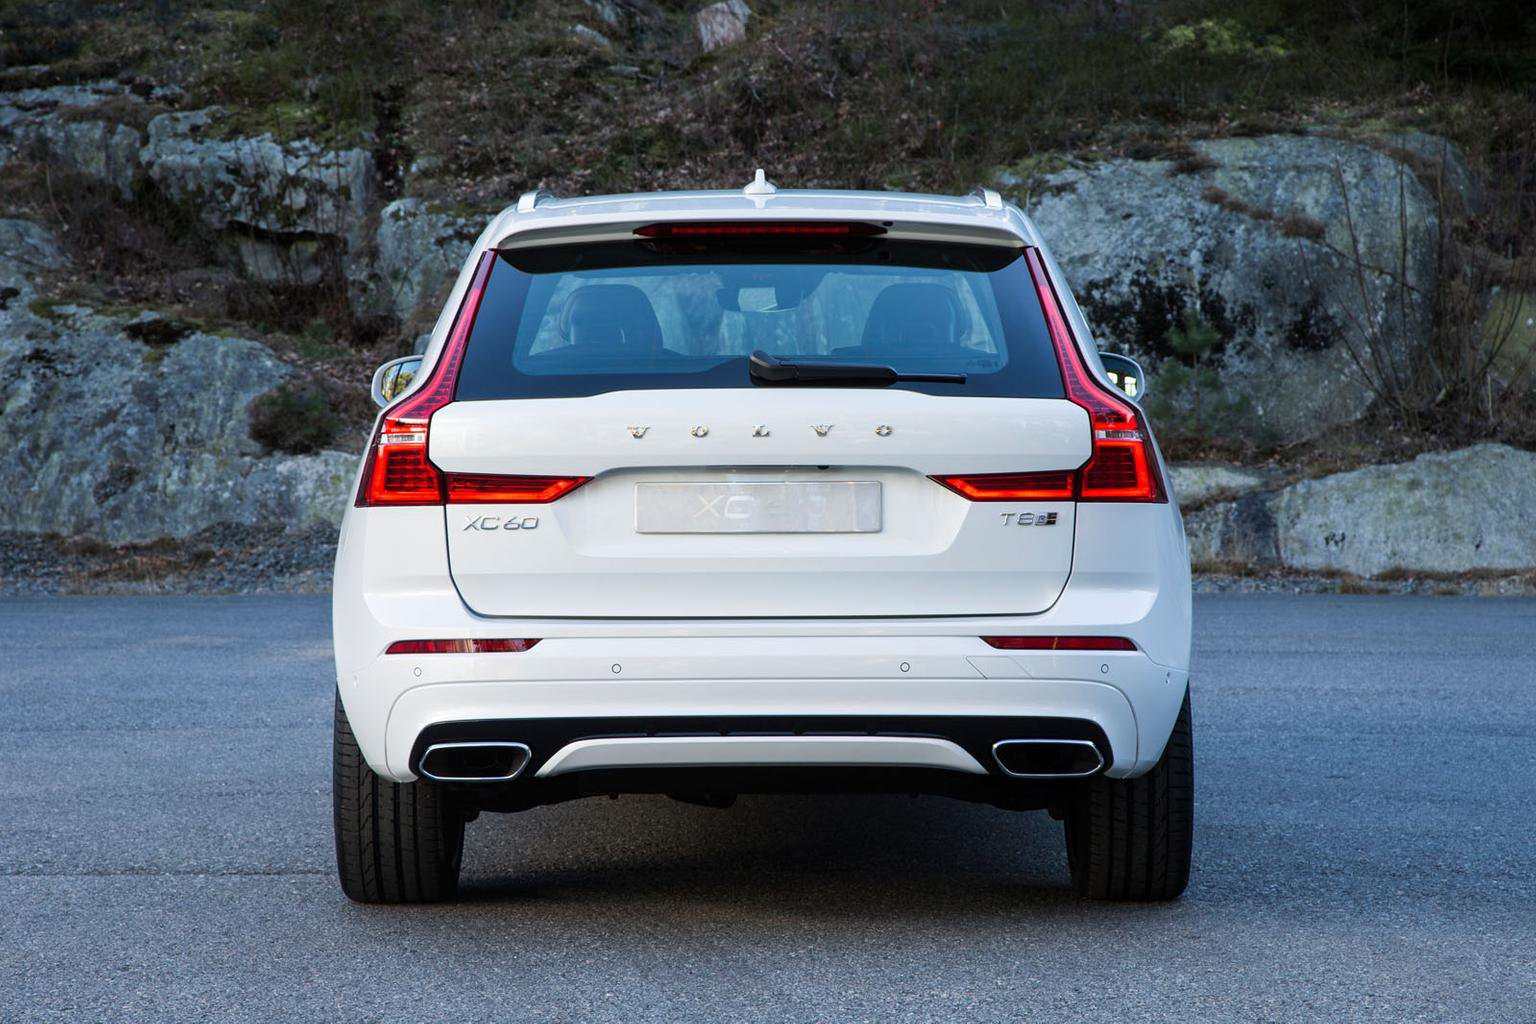 2017 Volvo XC60 to be priced from £37,205